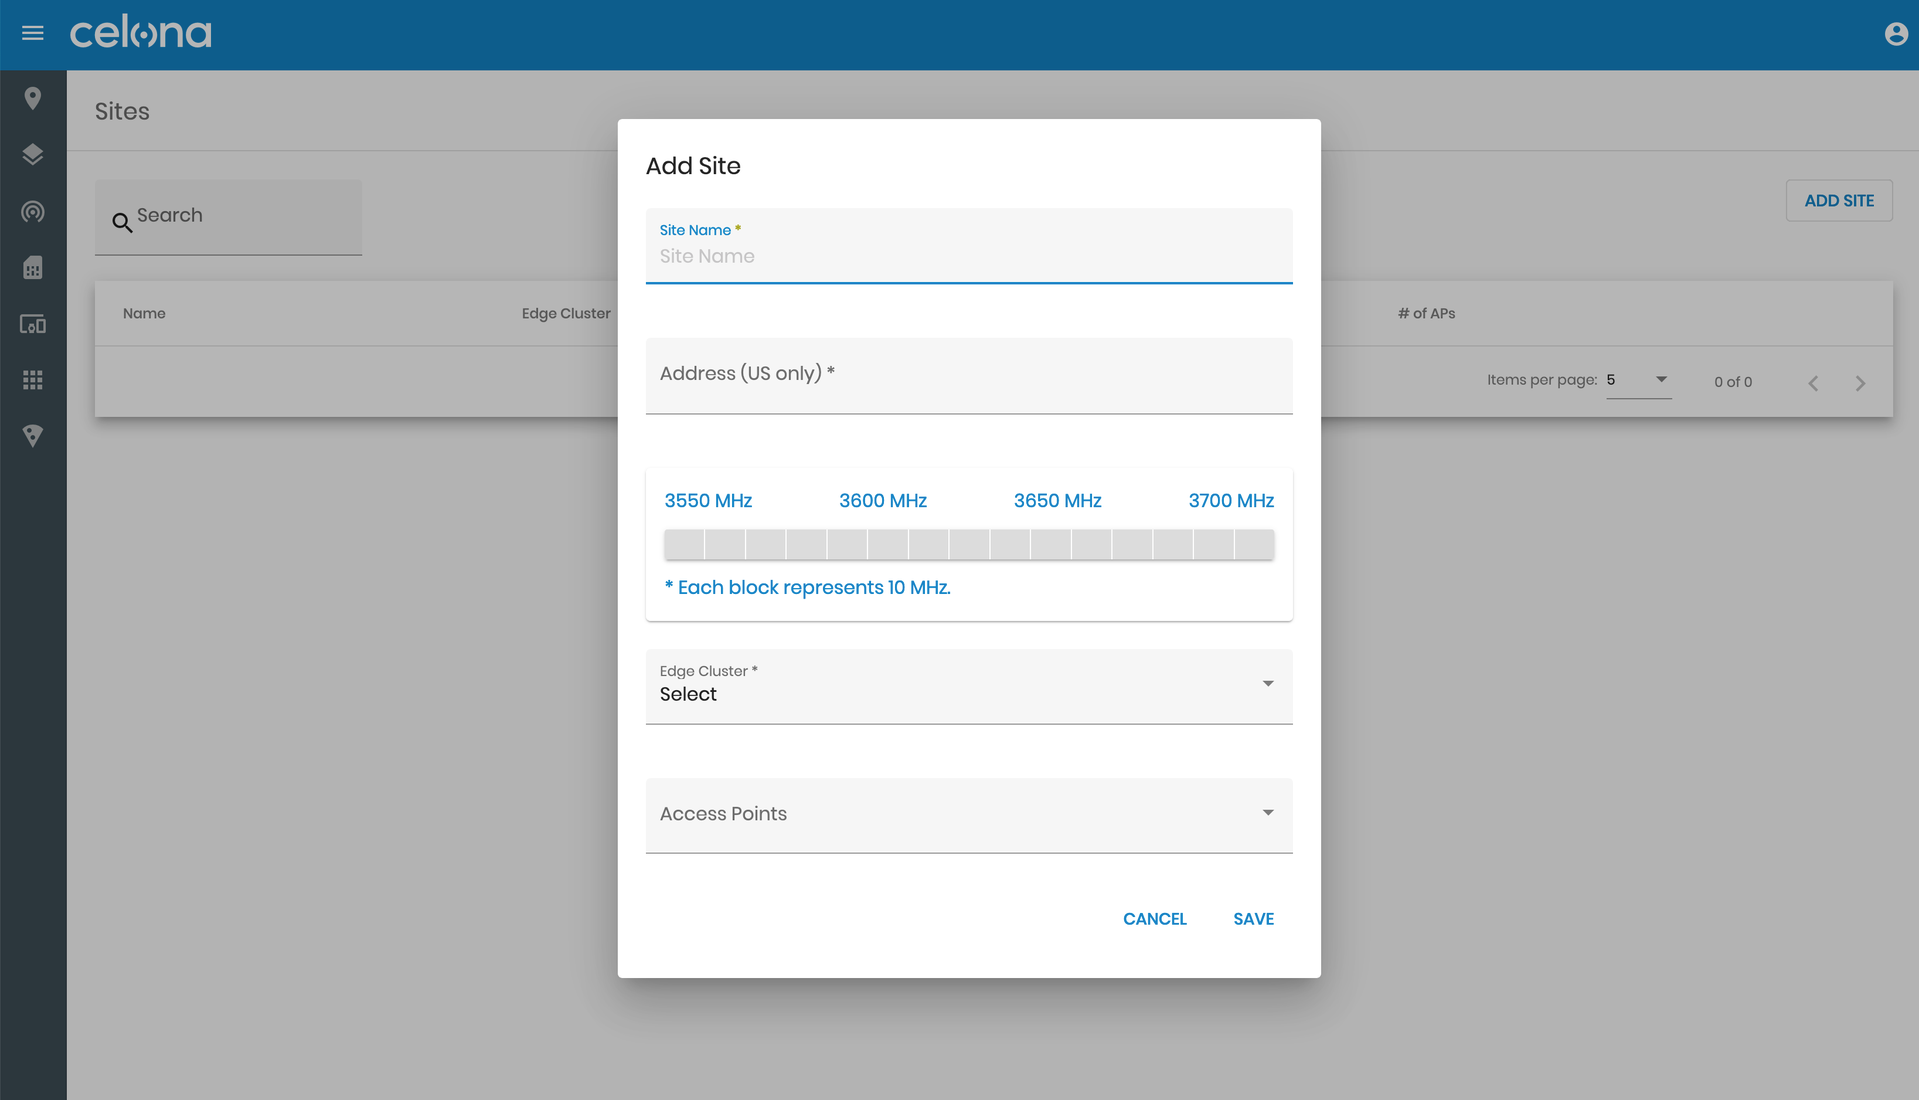 Adding a site on the Celona Orchestrator